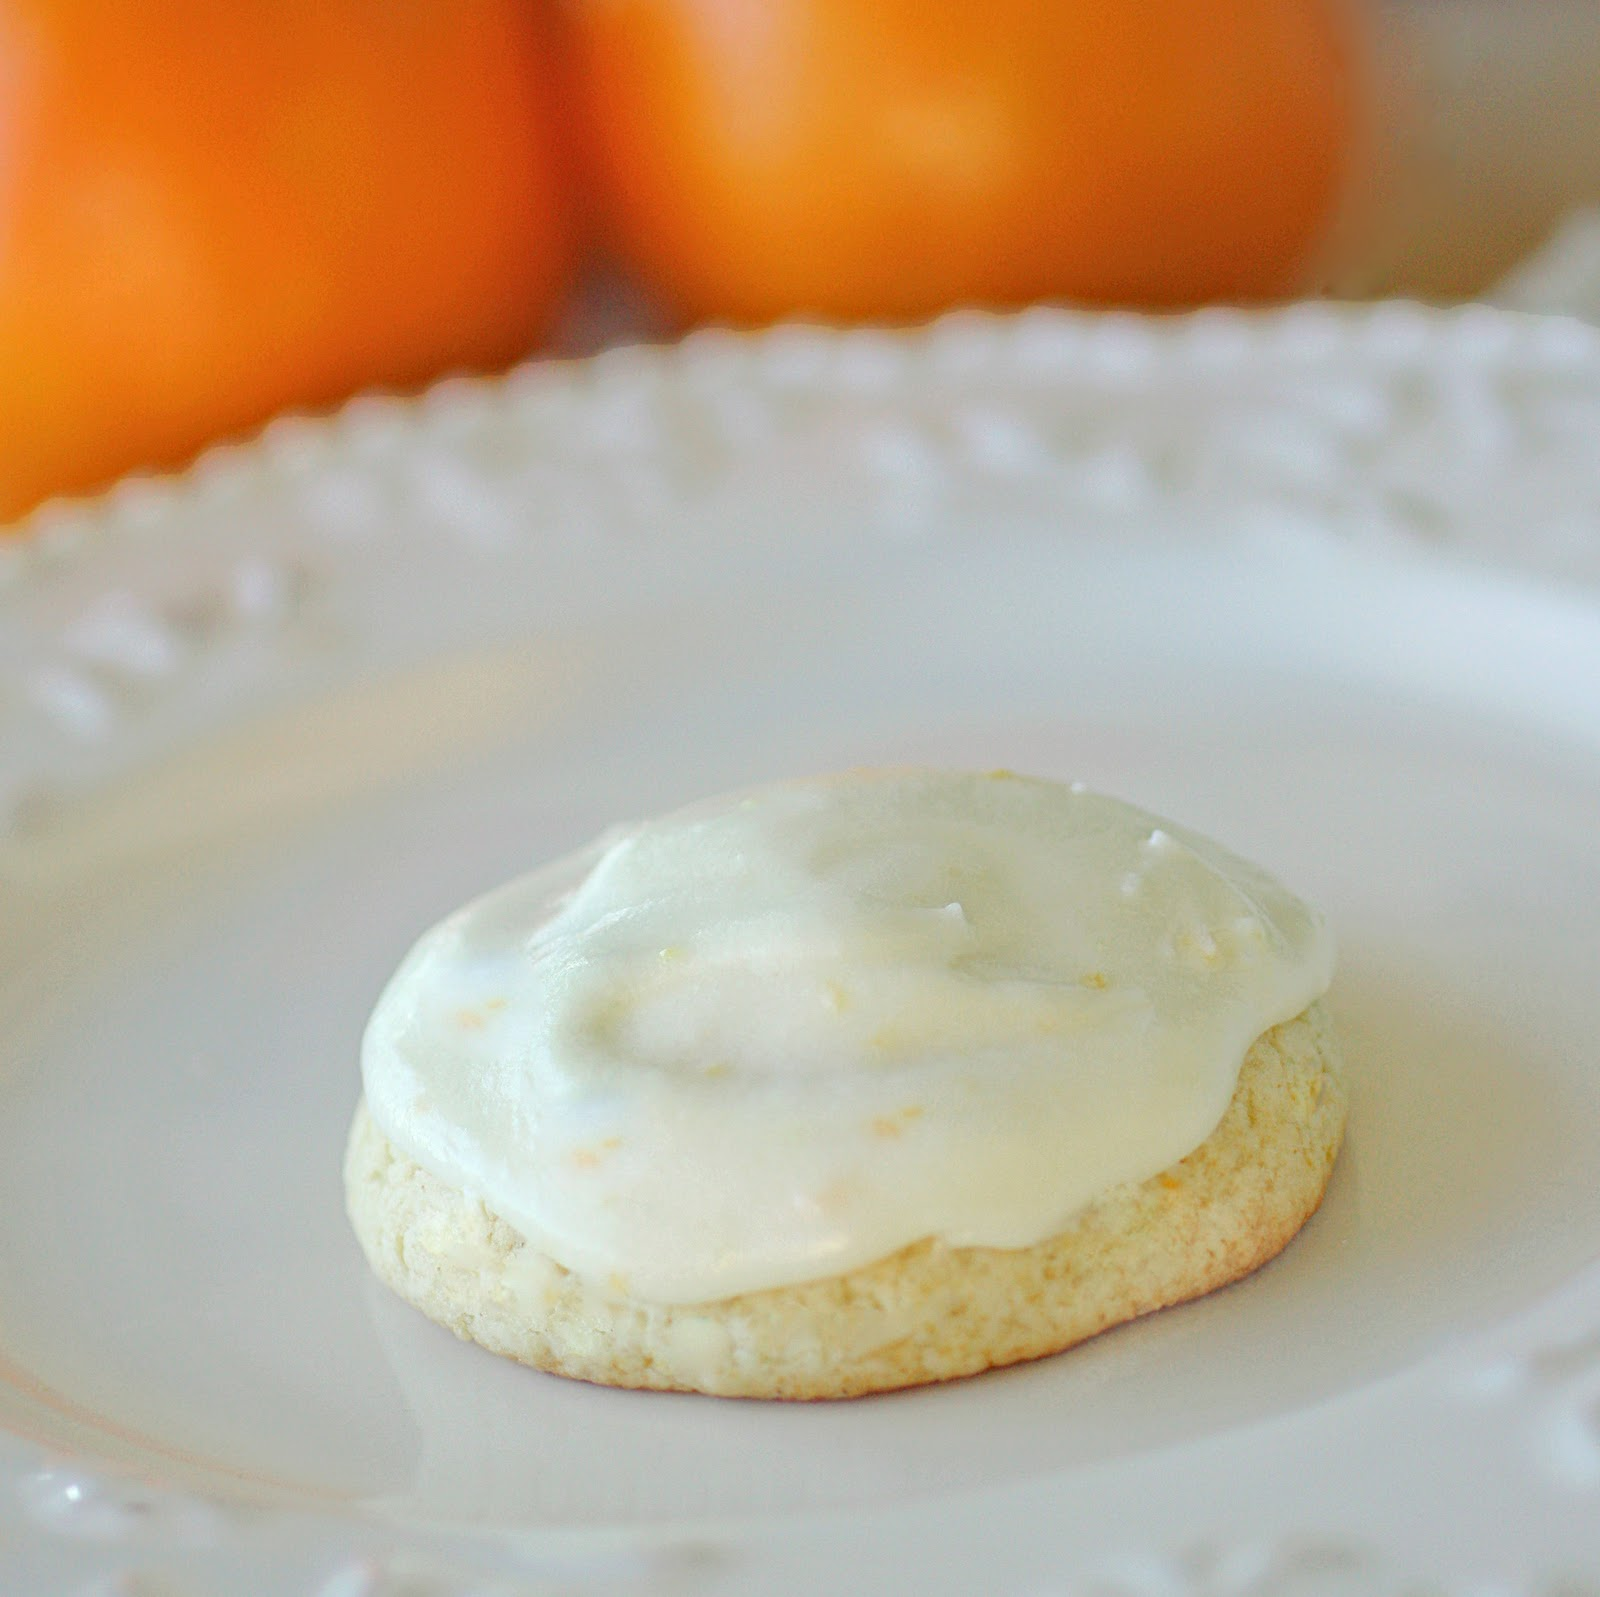 Day 3 of 12 Days of Christmas Cookies: Orange Cookies - The Girl Who ...